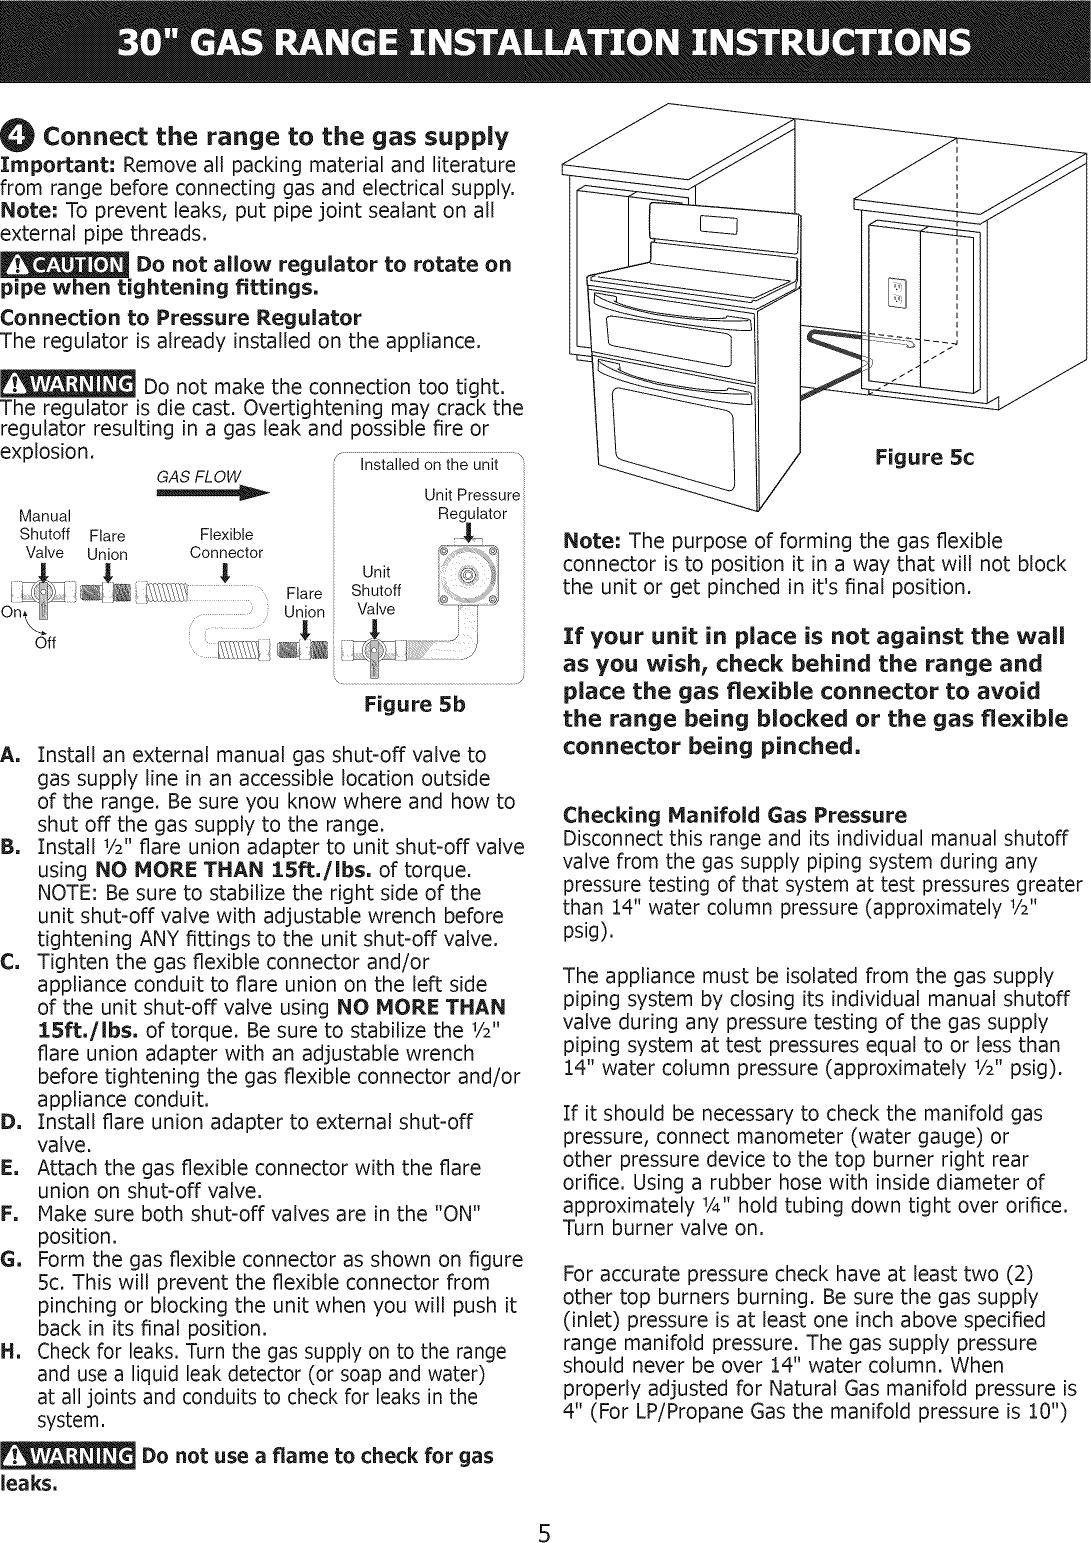 Frigidaire Fggf304dlb1 User Manual Gas Range Manuals And Guides 1012384l Propane Electric Refrigerator Wiring Schematic Page 5 Of 12